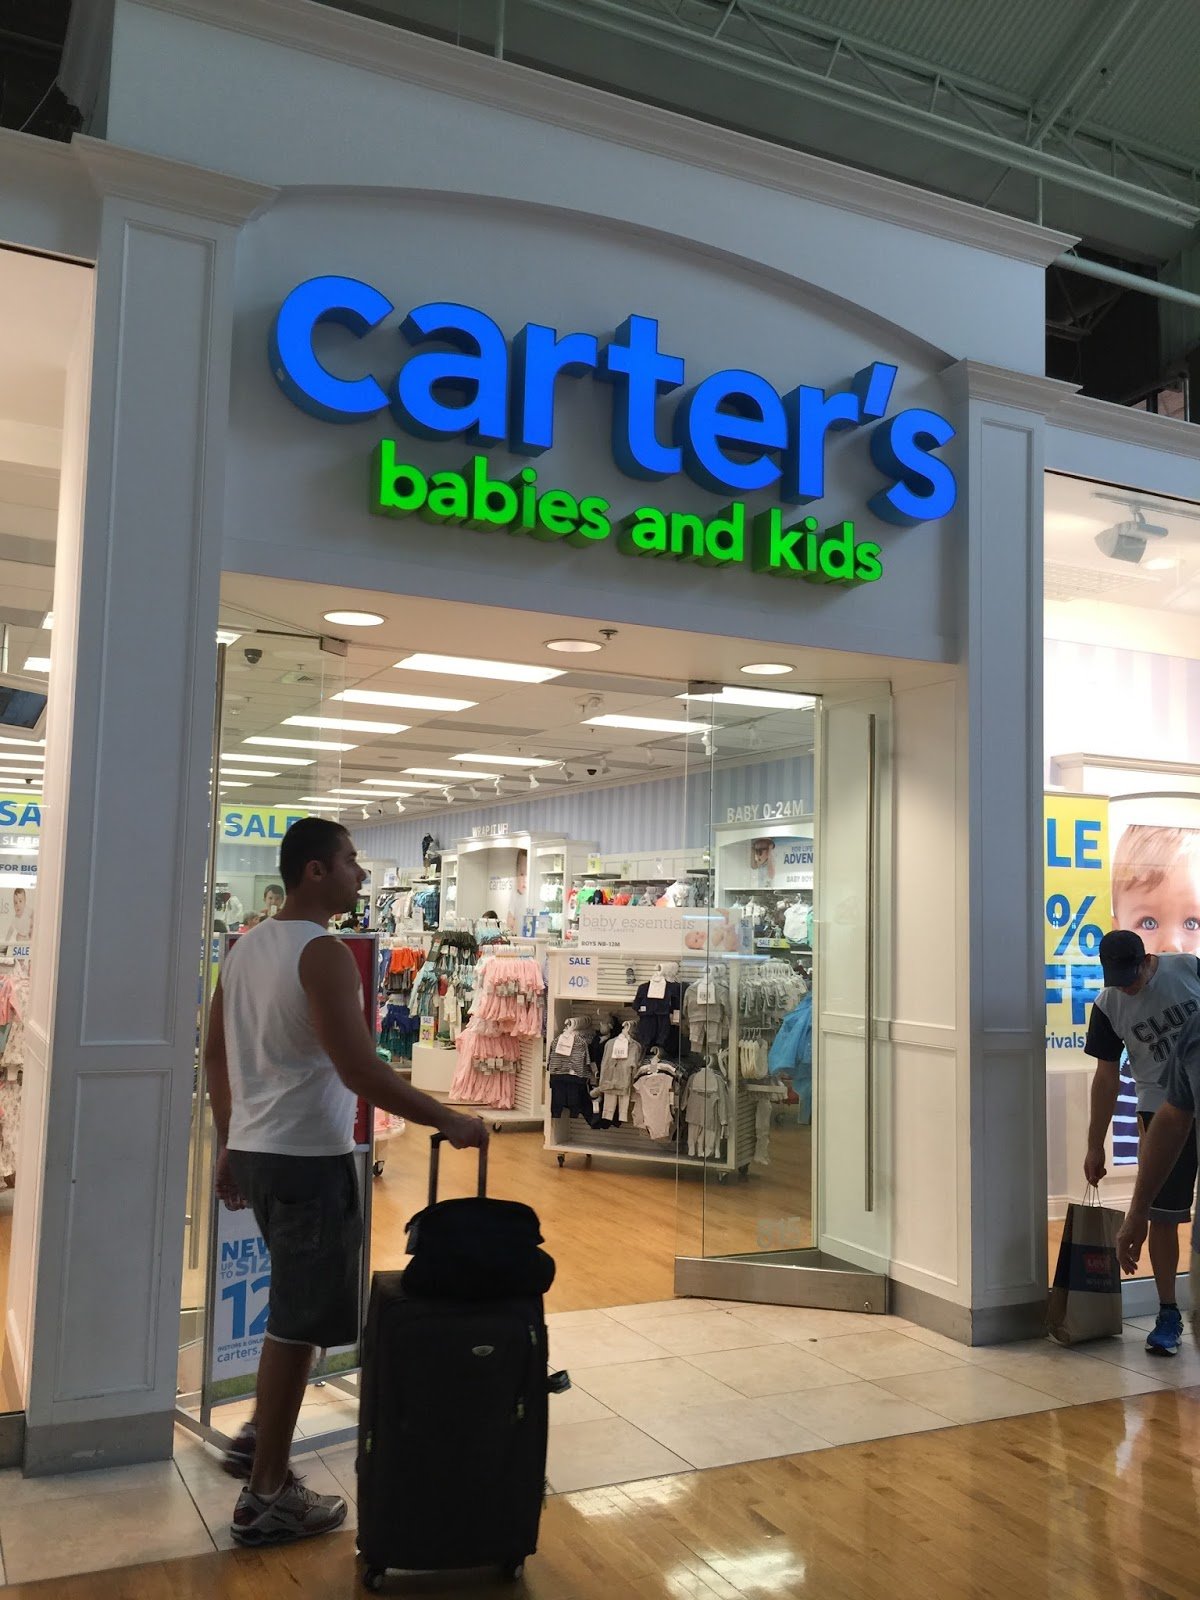 25 off carters coupon